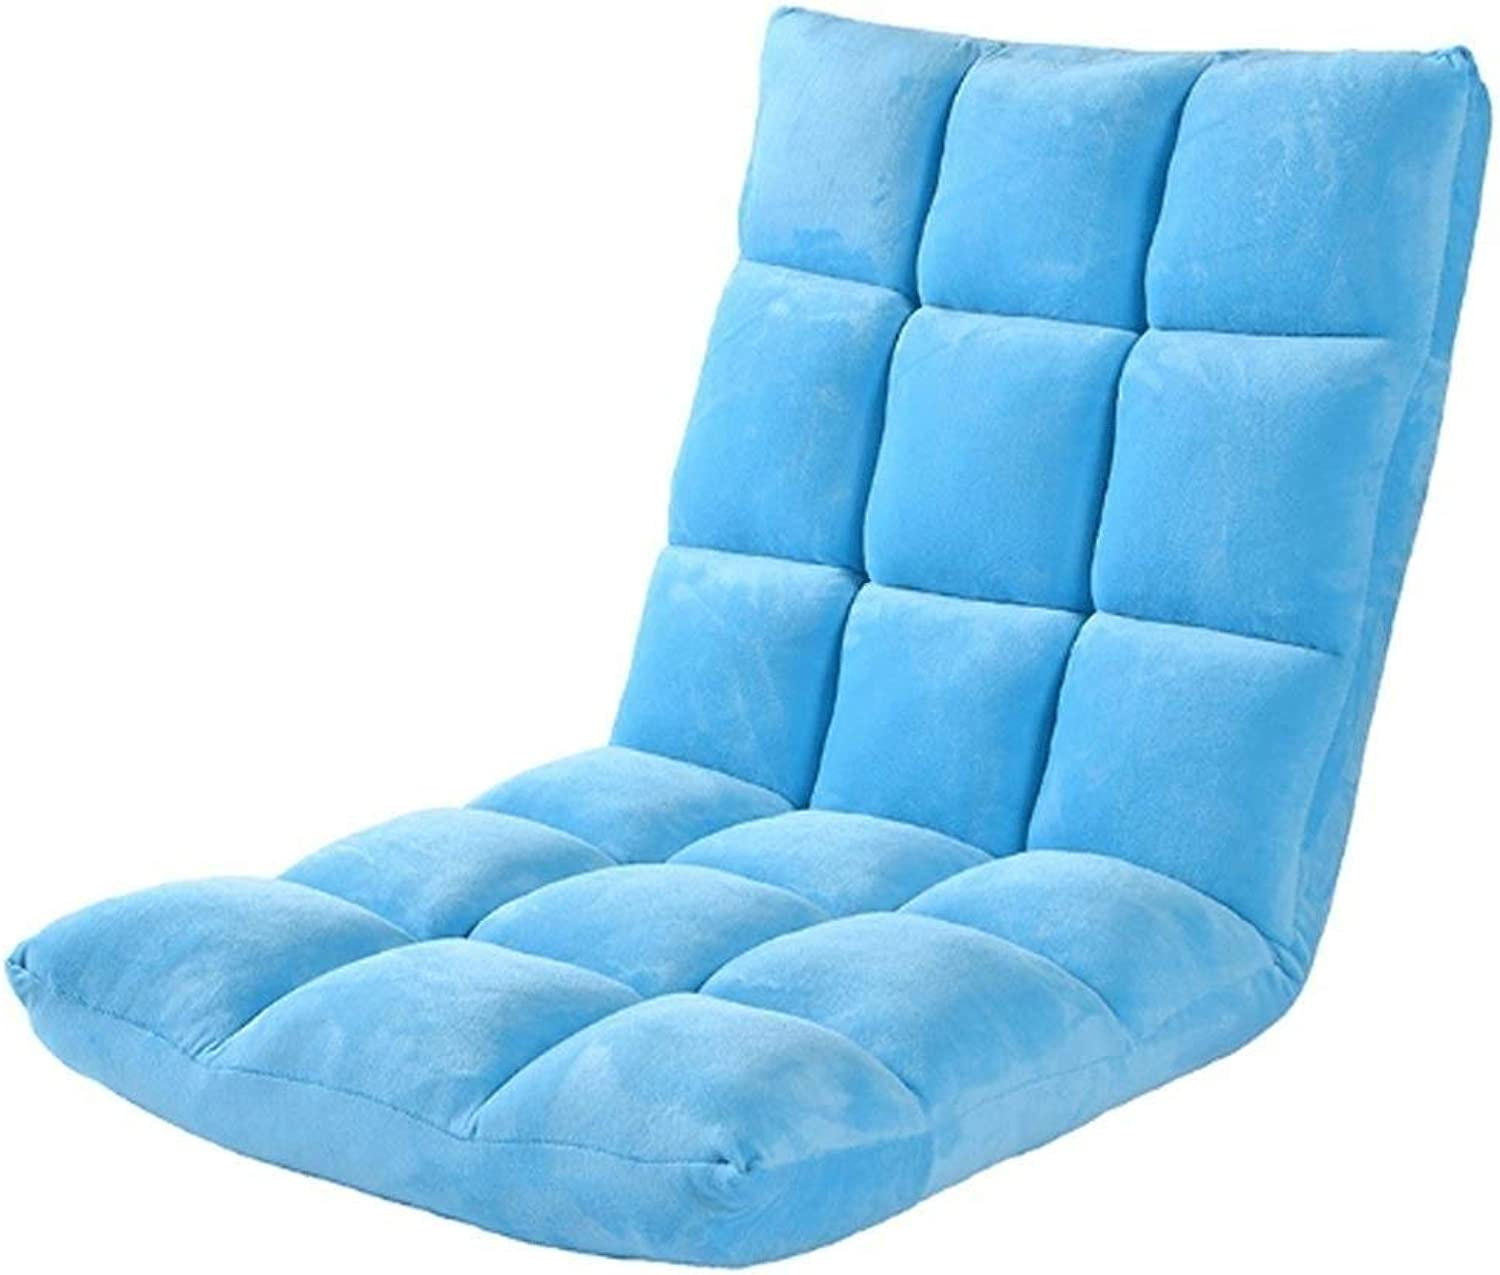 RUIMA Plaid Single Sofa Foldable Tatami Chair Small Sofa Bed Lazy Couch Window Leisure Sofa (color   bluee)